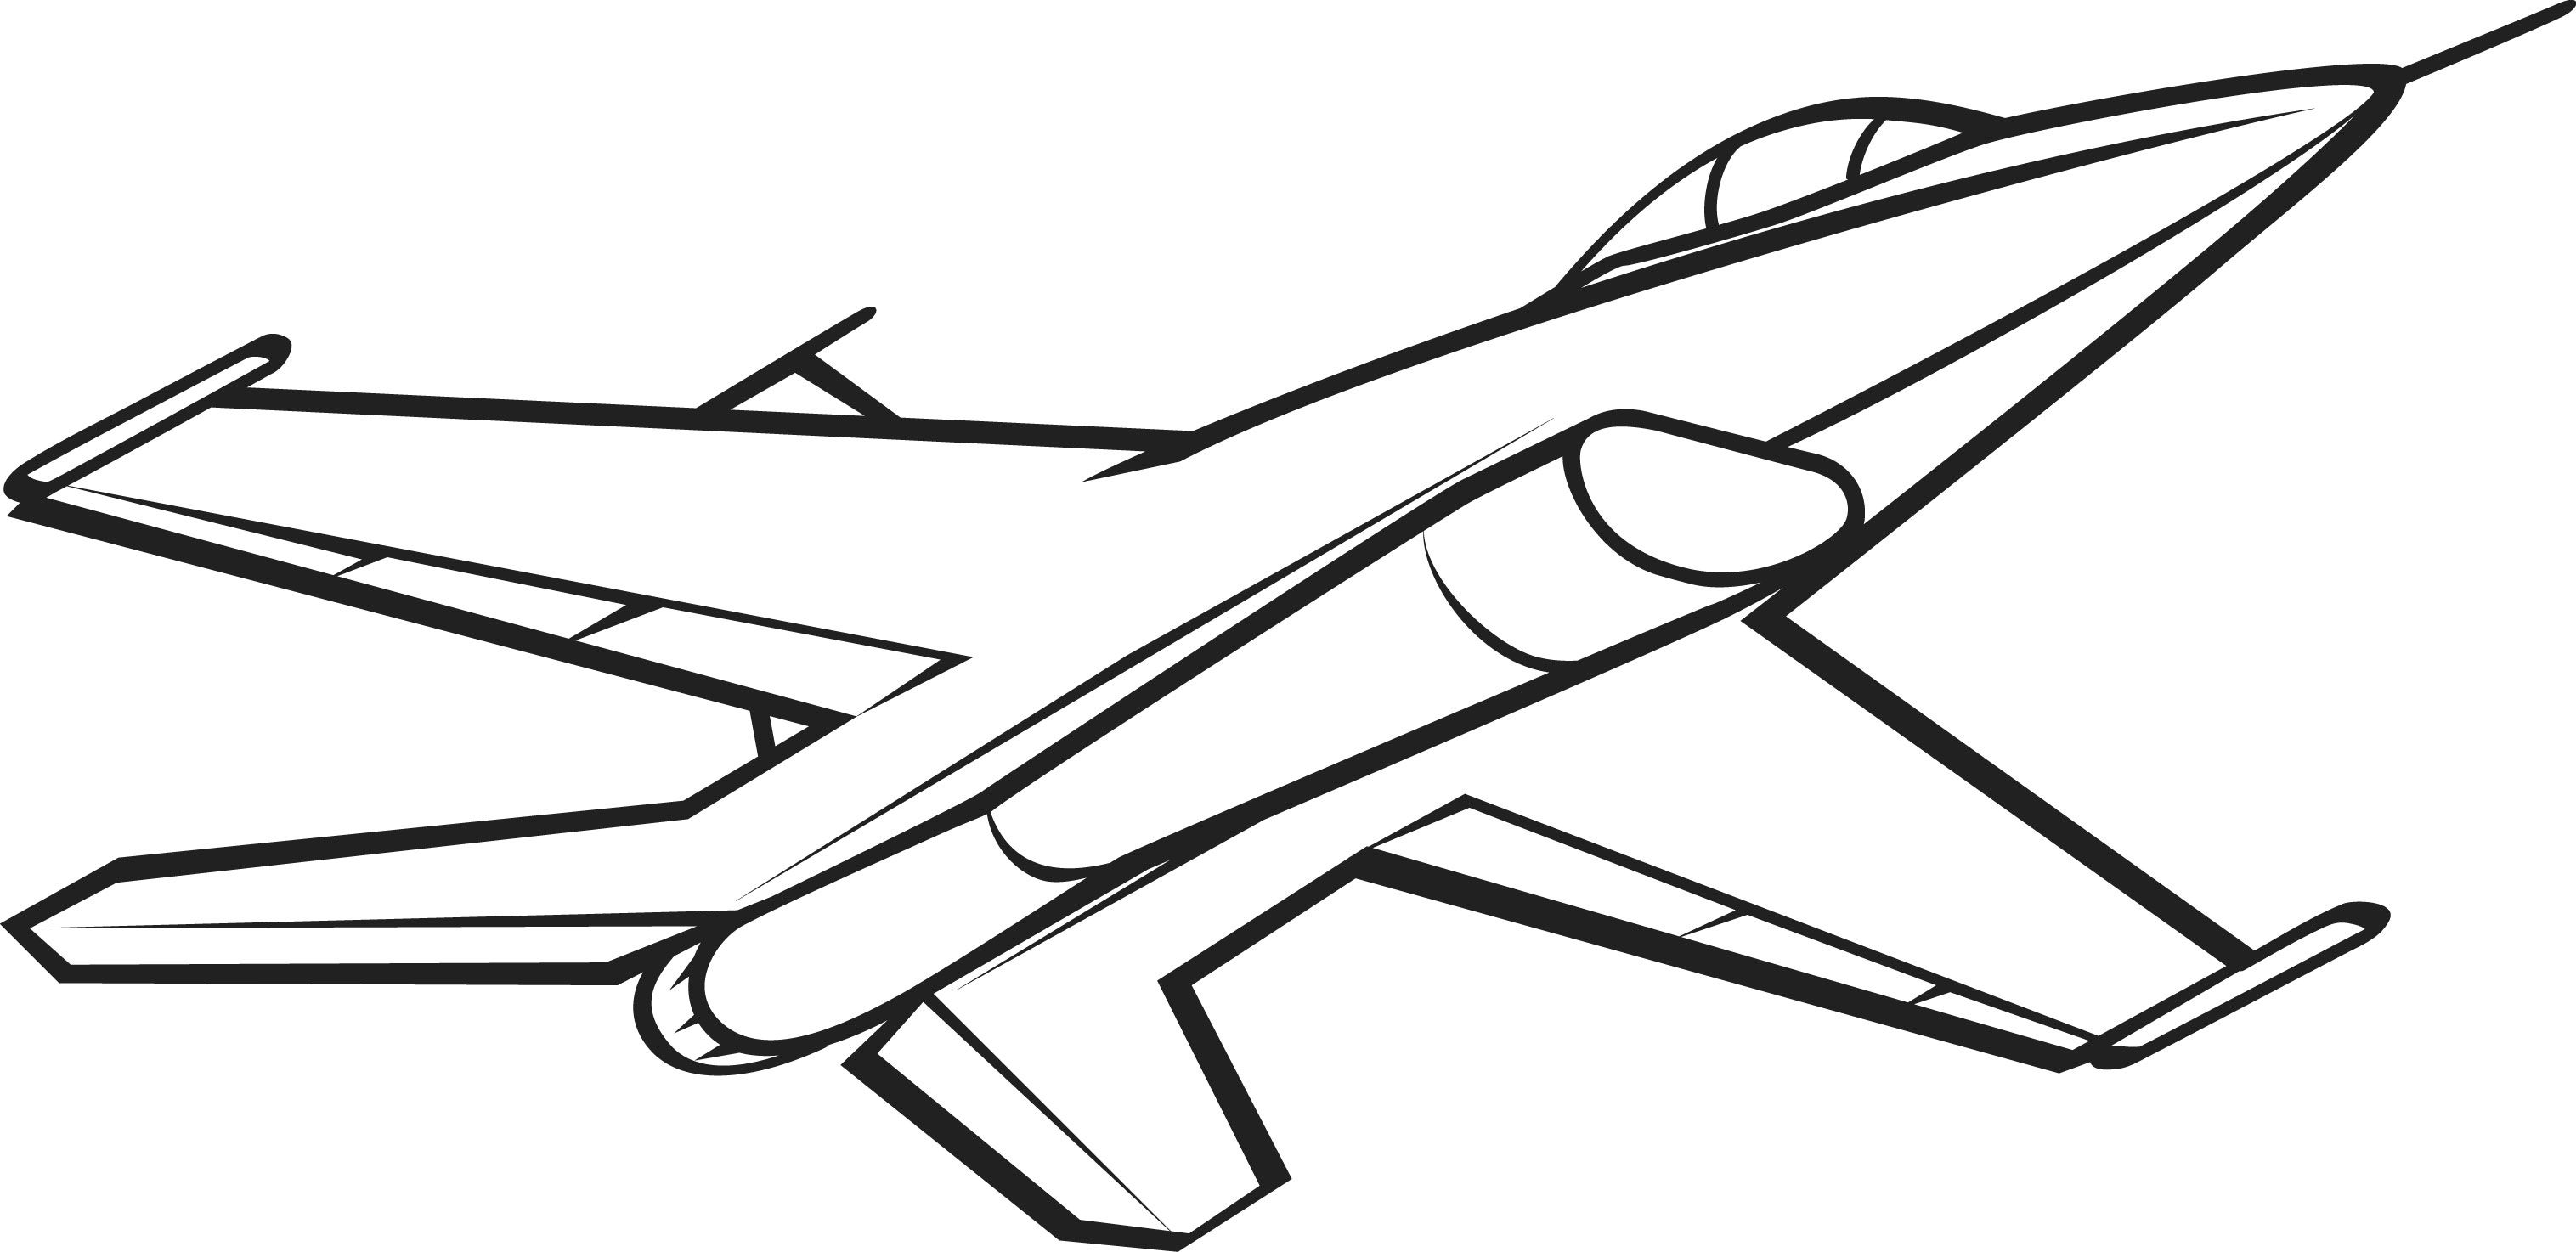 black and white jet picture for coloring airplane coloring pages rh pinterest com au jet images clipart jet images clipart